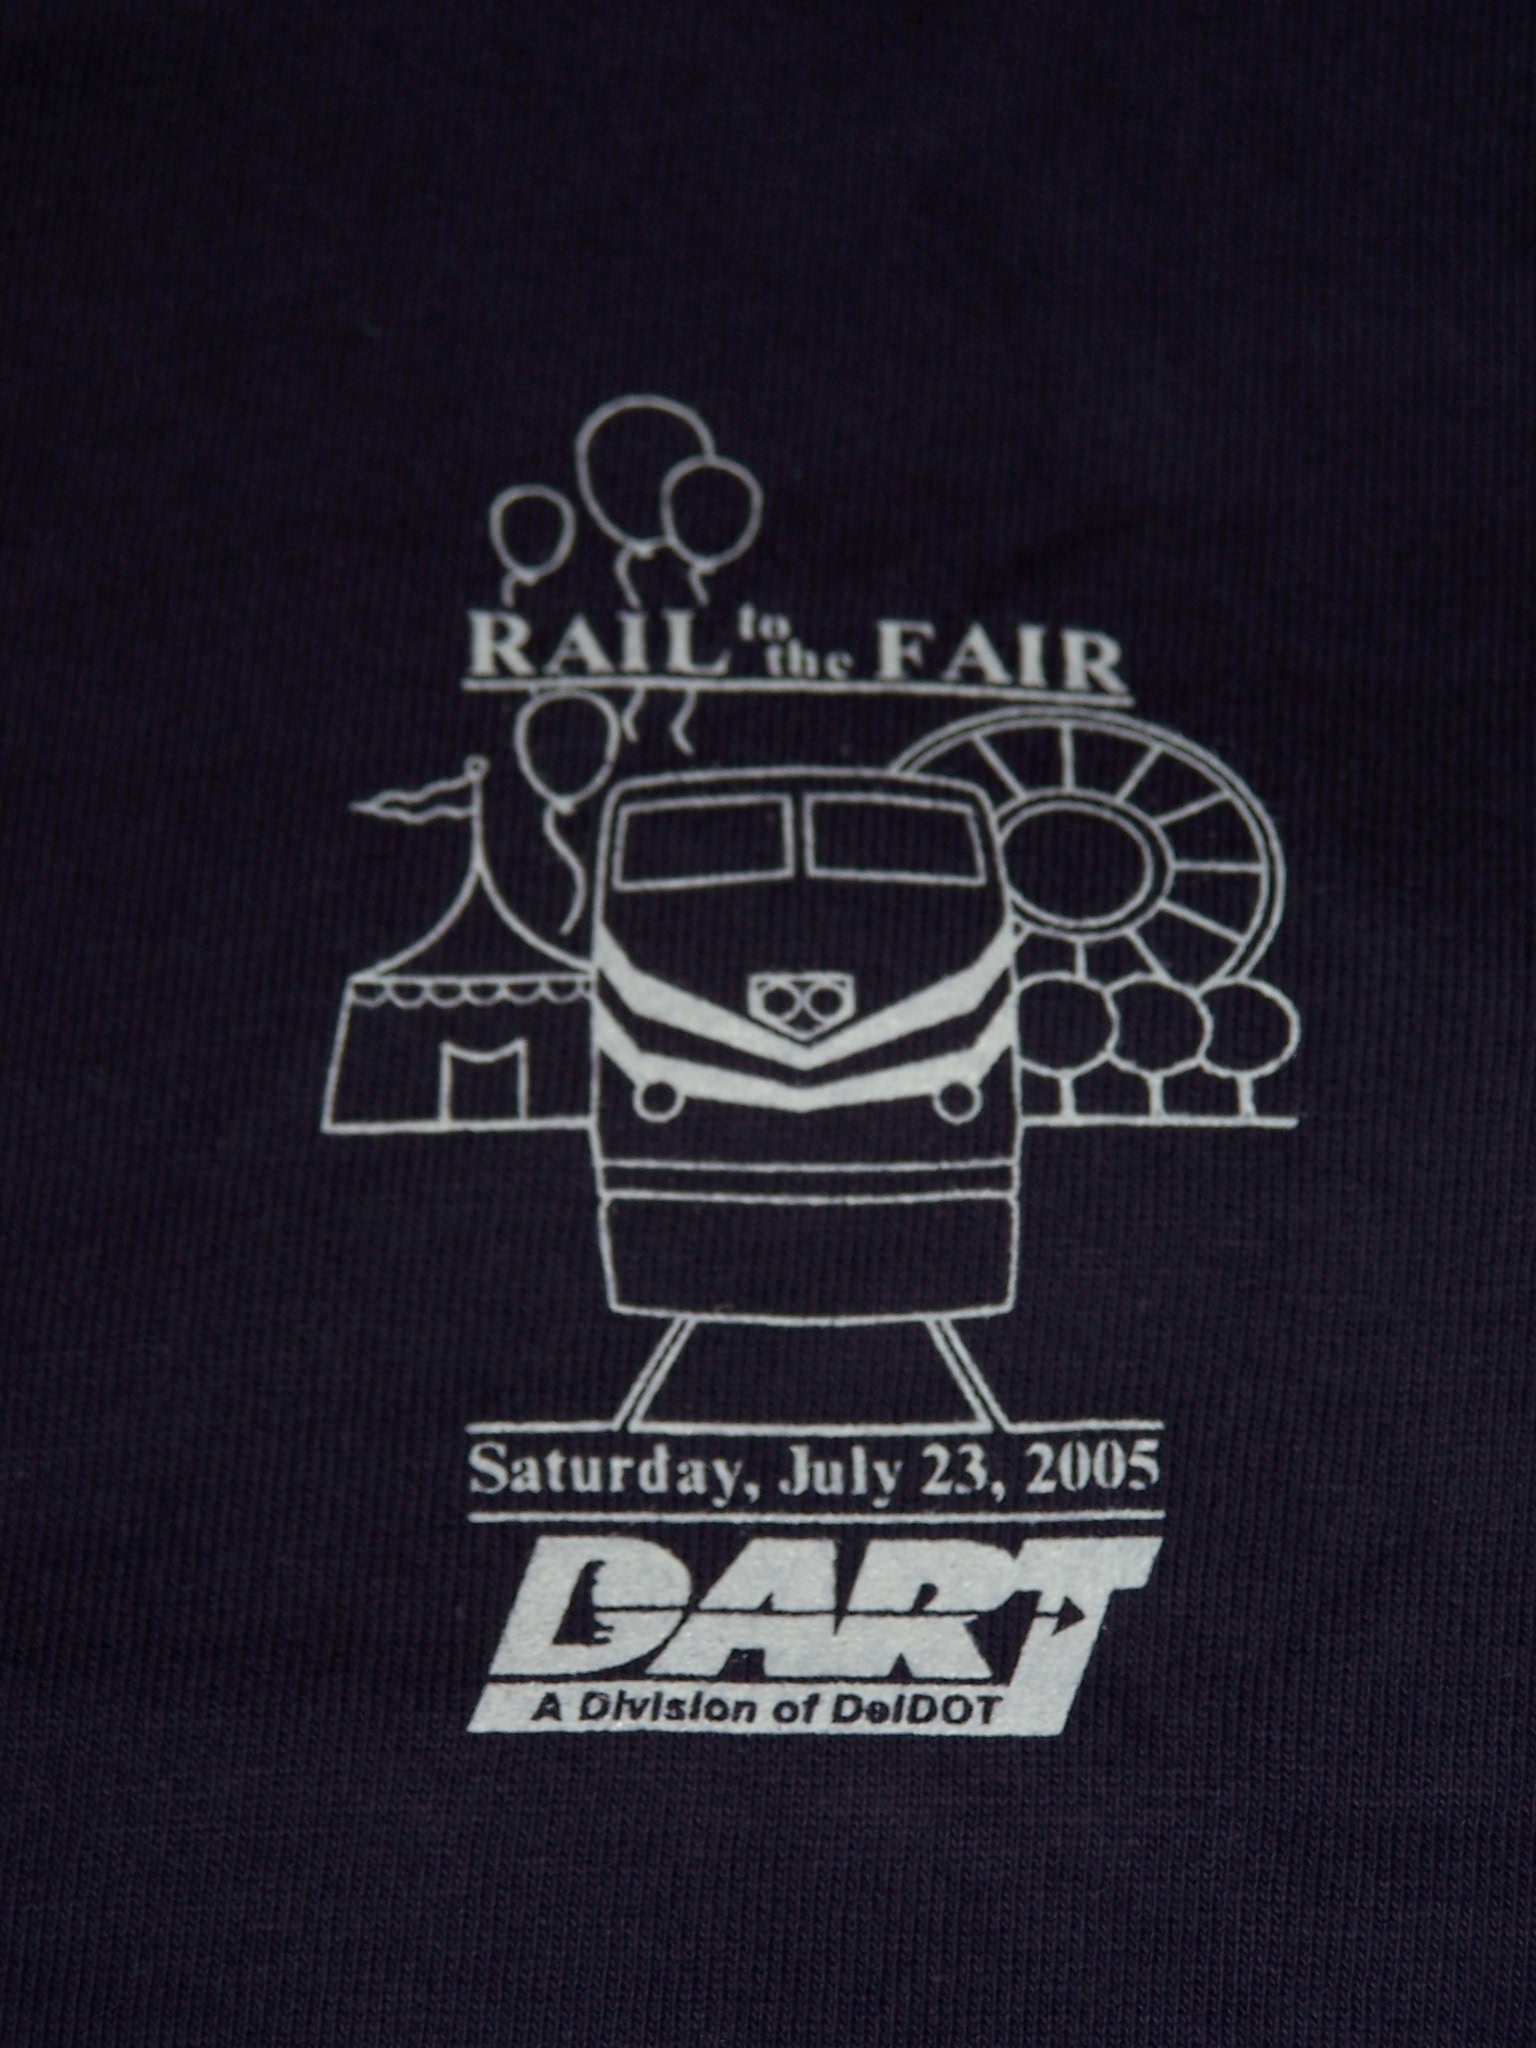 2005 Rail to the Fair tee shirt